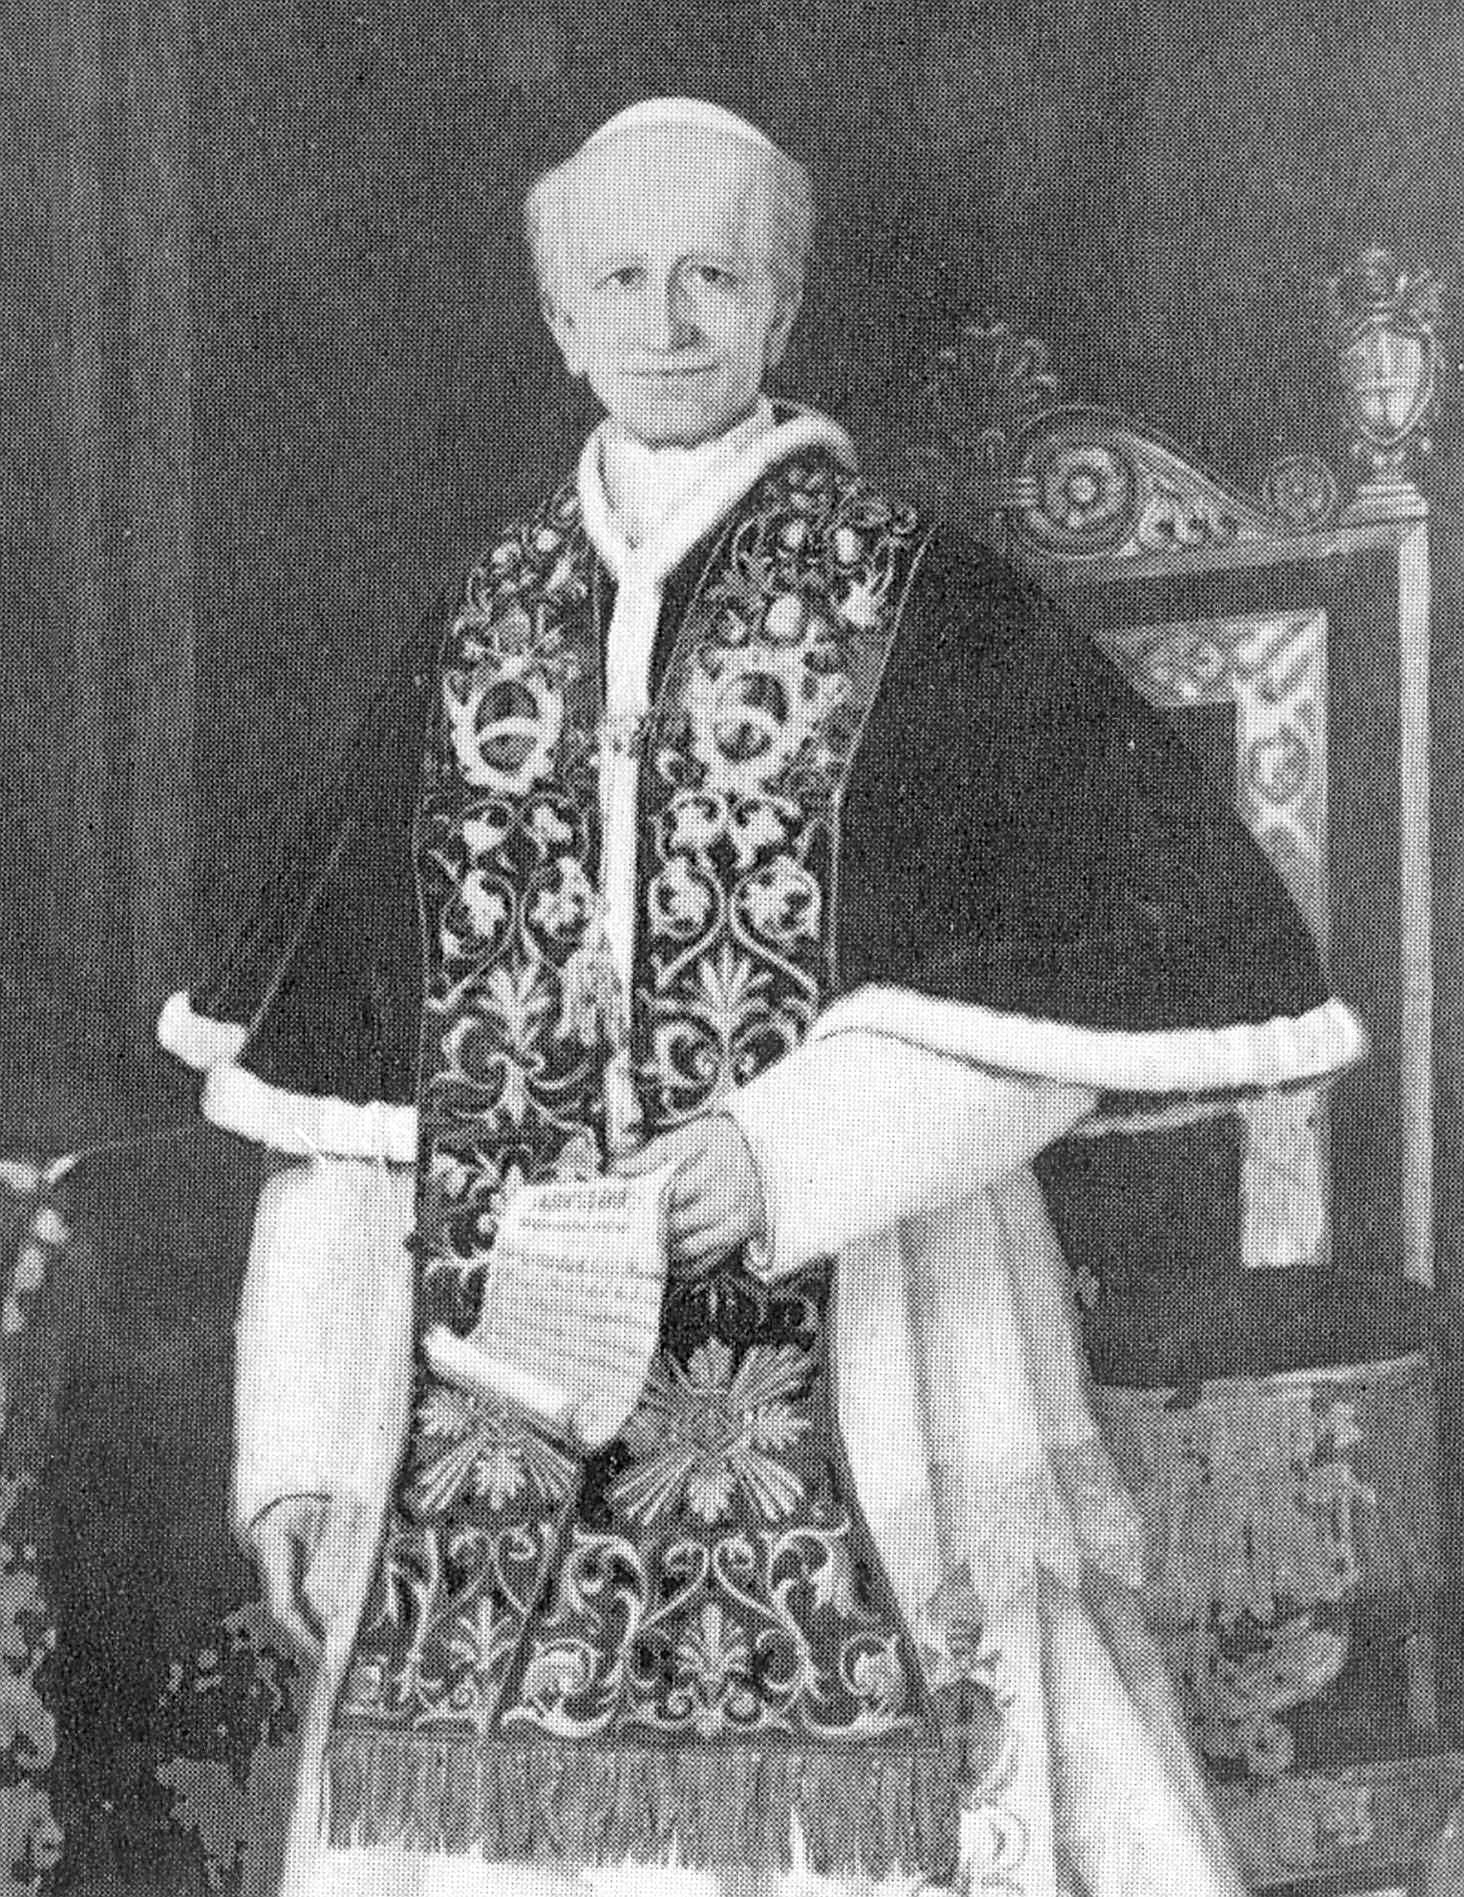 rerum novarum by pope leo xiii essay Download thesis statement on rerum novarum, pope leo xiii in our database or order an original thesis paper that will be written by one of our staff writers and delivered according to the deadline.